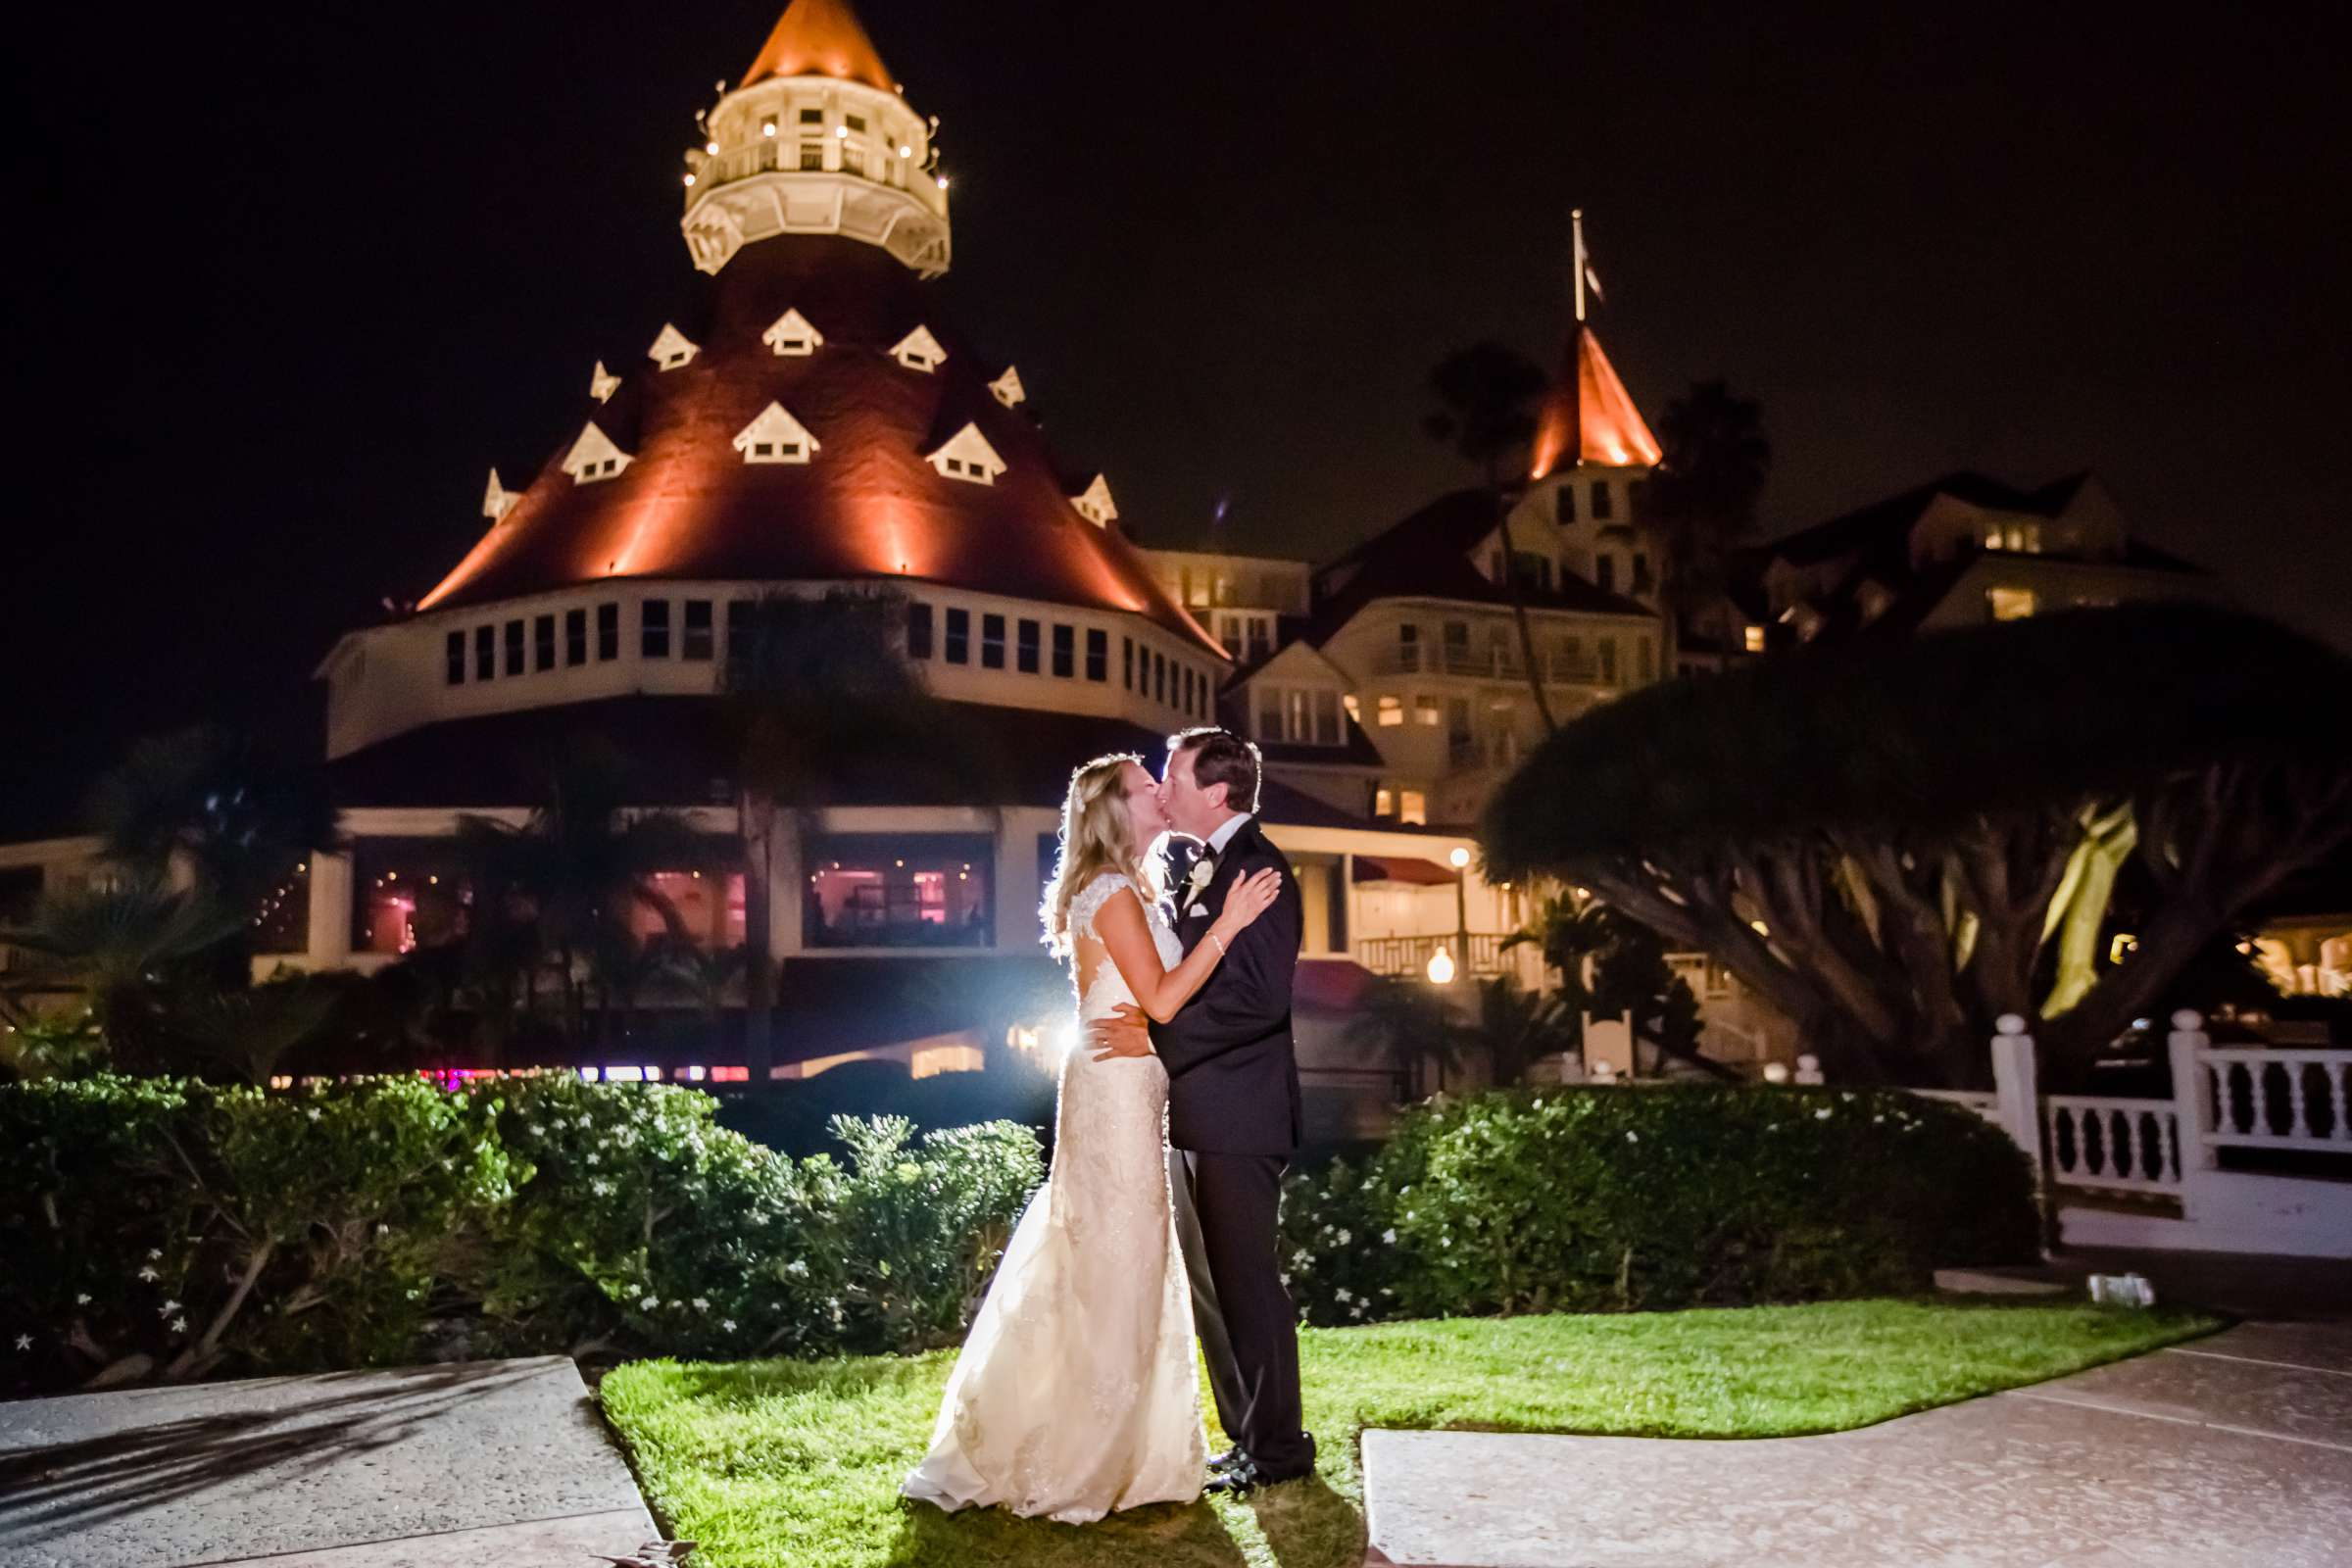 Hotel Del Coronado Wedding coordinated by Creative Affairs Inc, Diane and Paul Wedding Photo #81 by True Photography